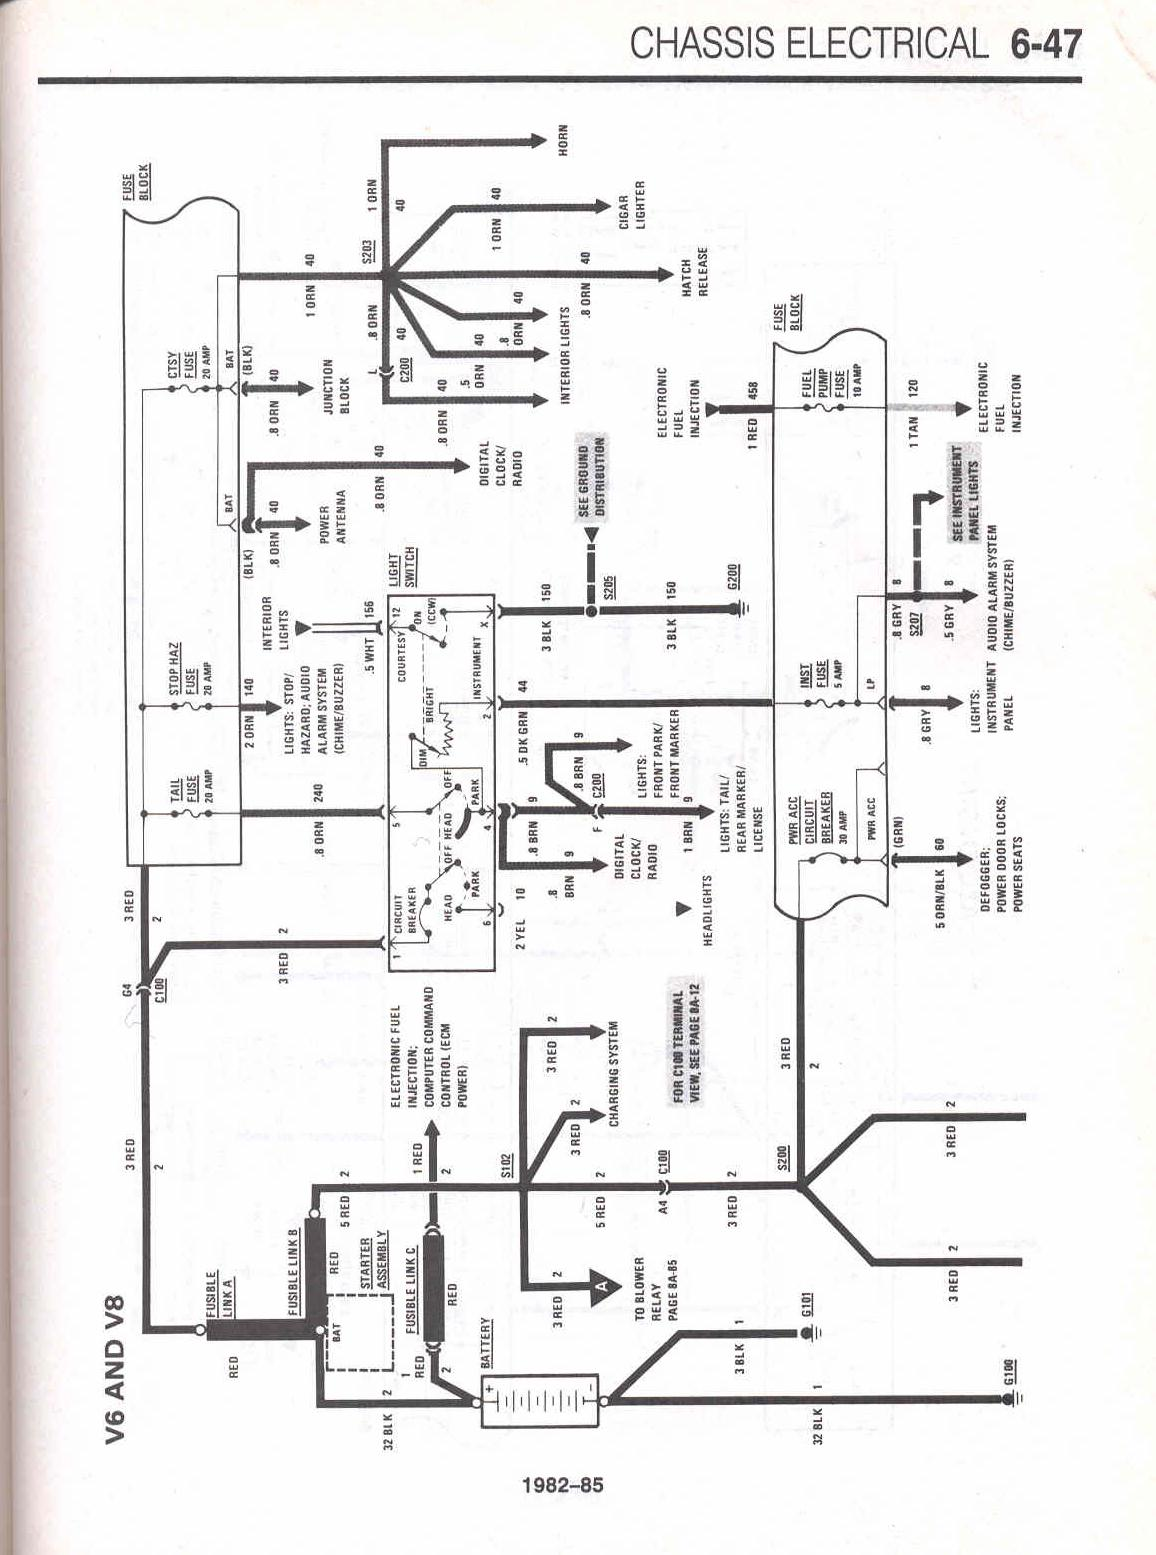 [DIAGRAM] 1969 Camaro Wiring Diagram Free FULL Version HD